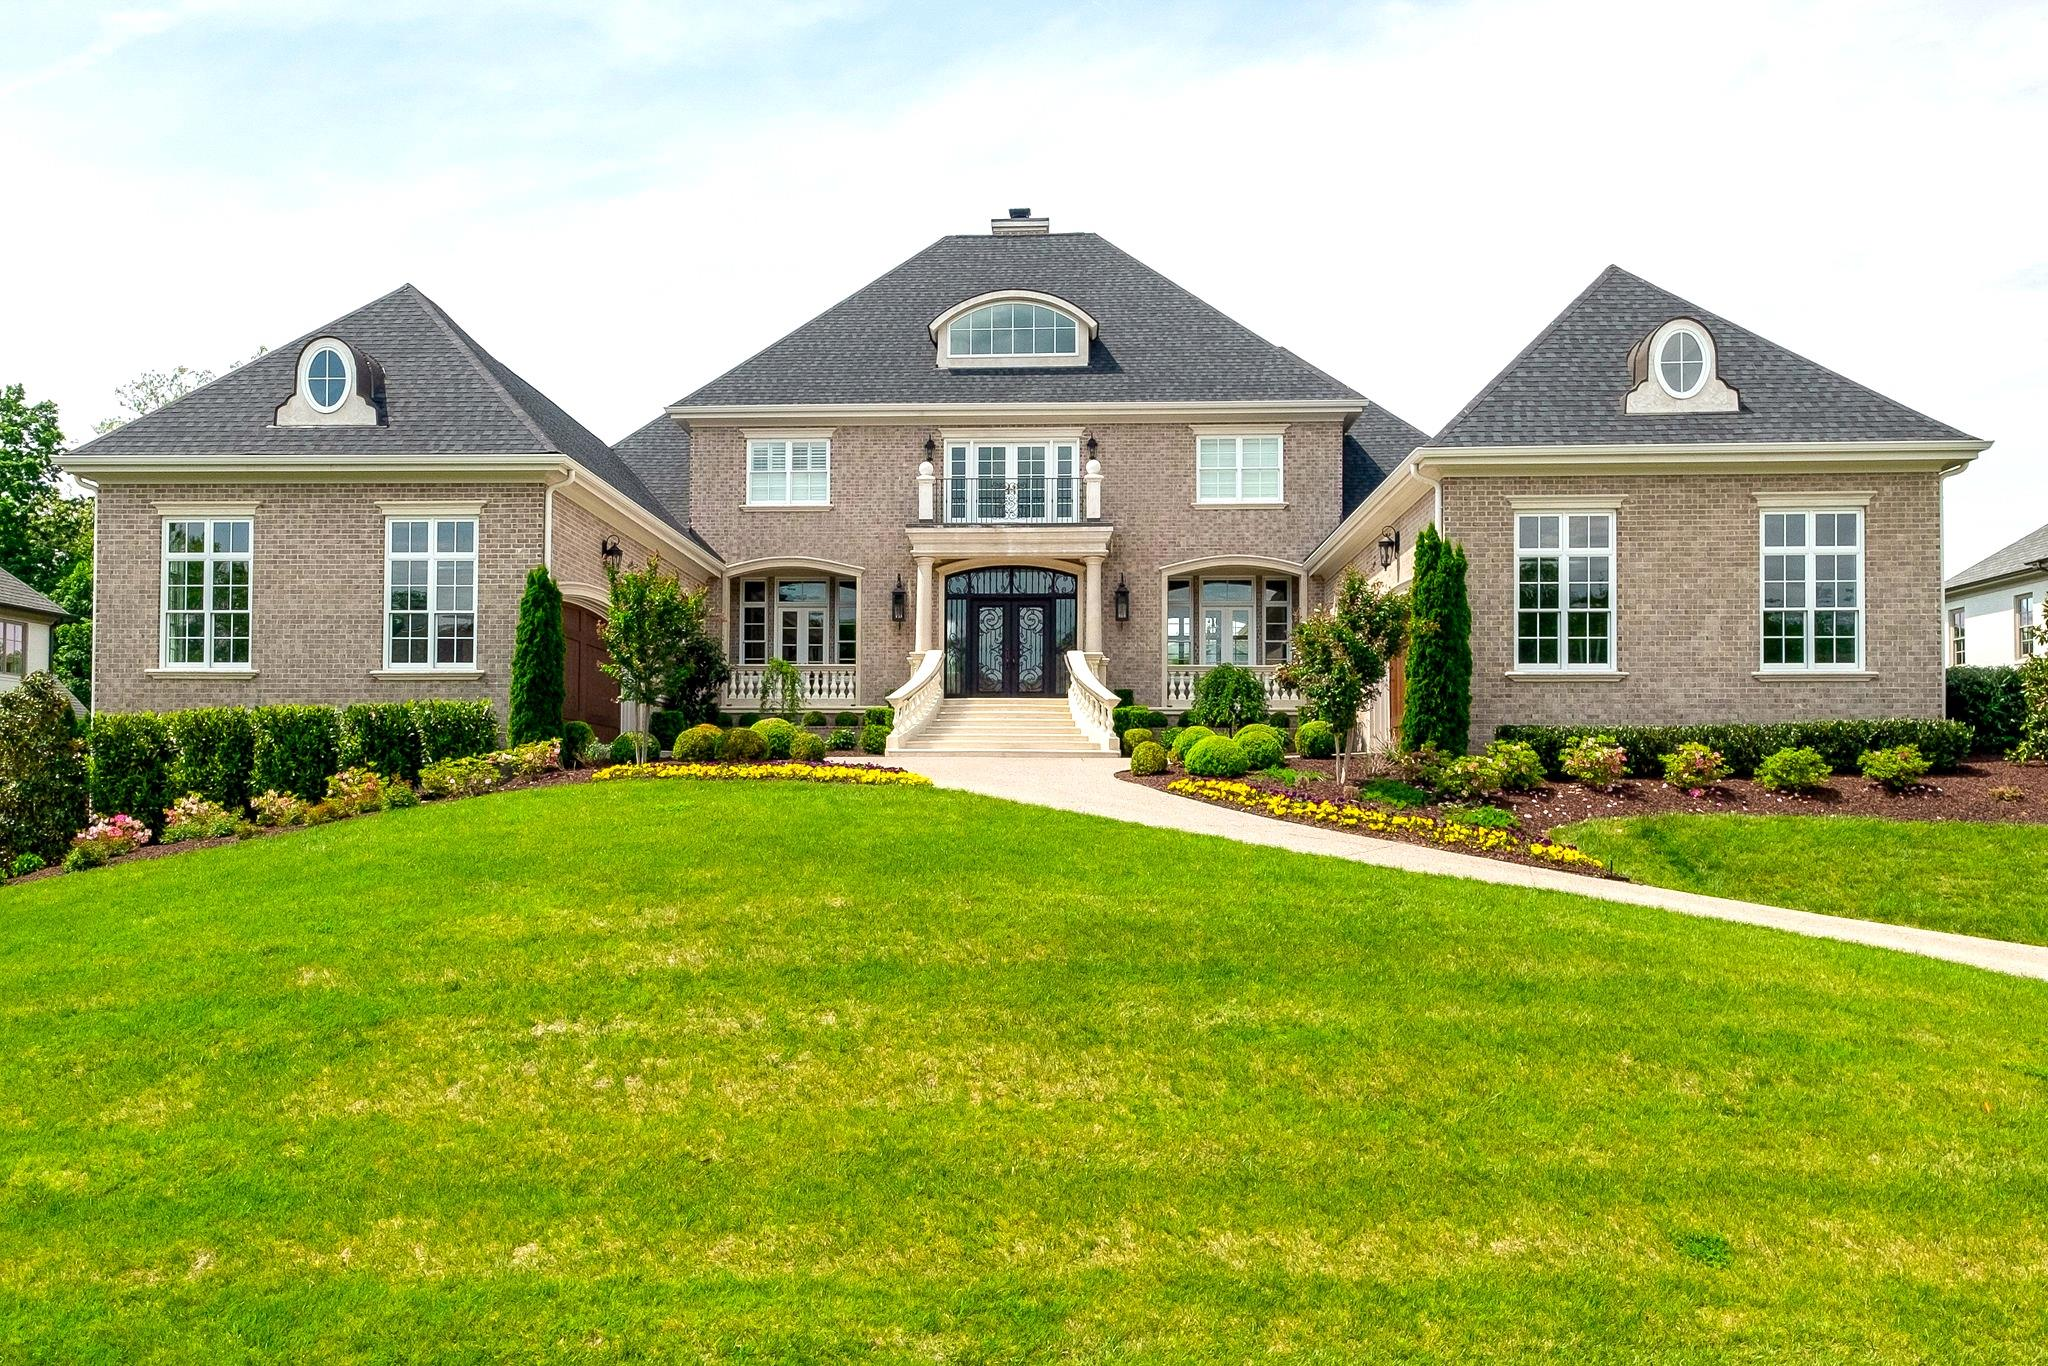 12 Oxmoor Ct, Brentwood, TN 37027 - Brentwood, TN real estate listing